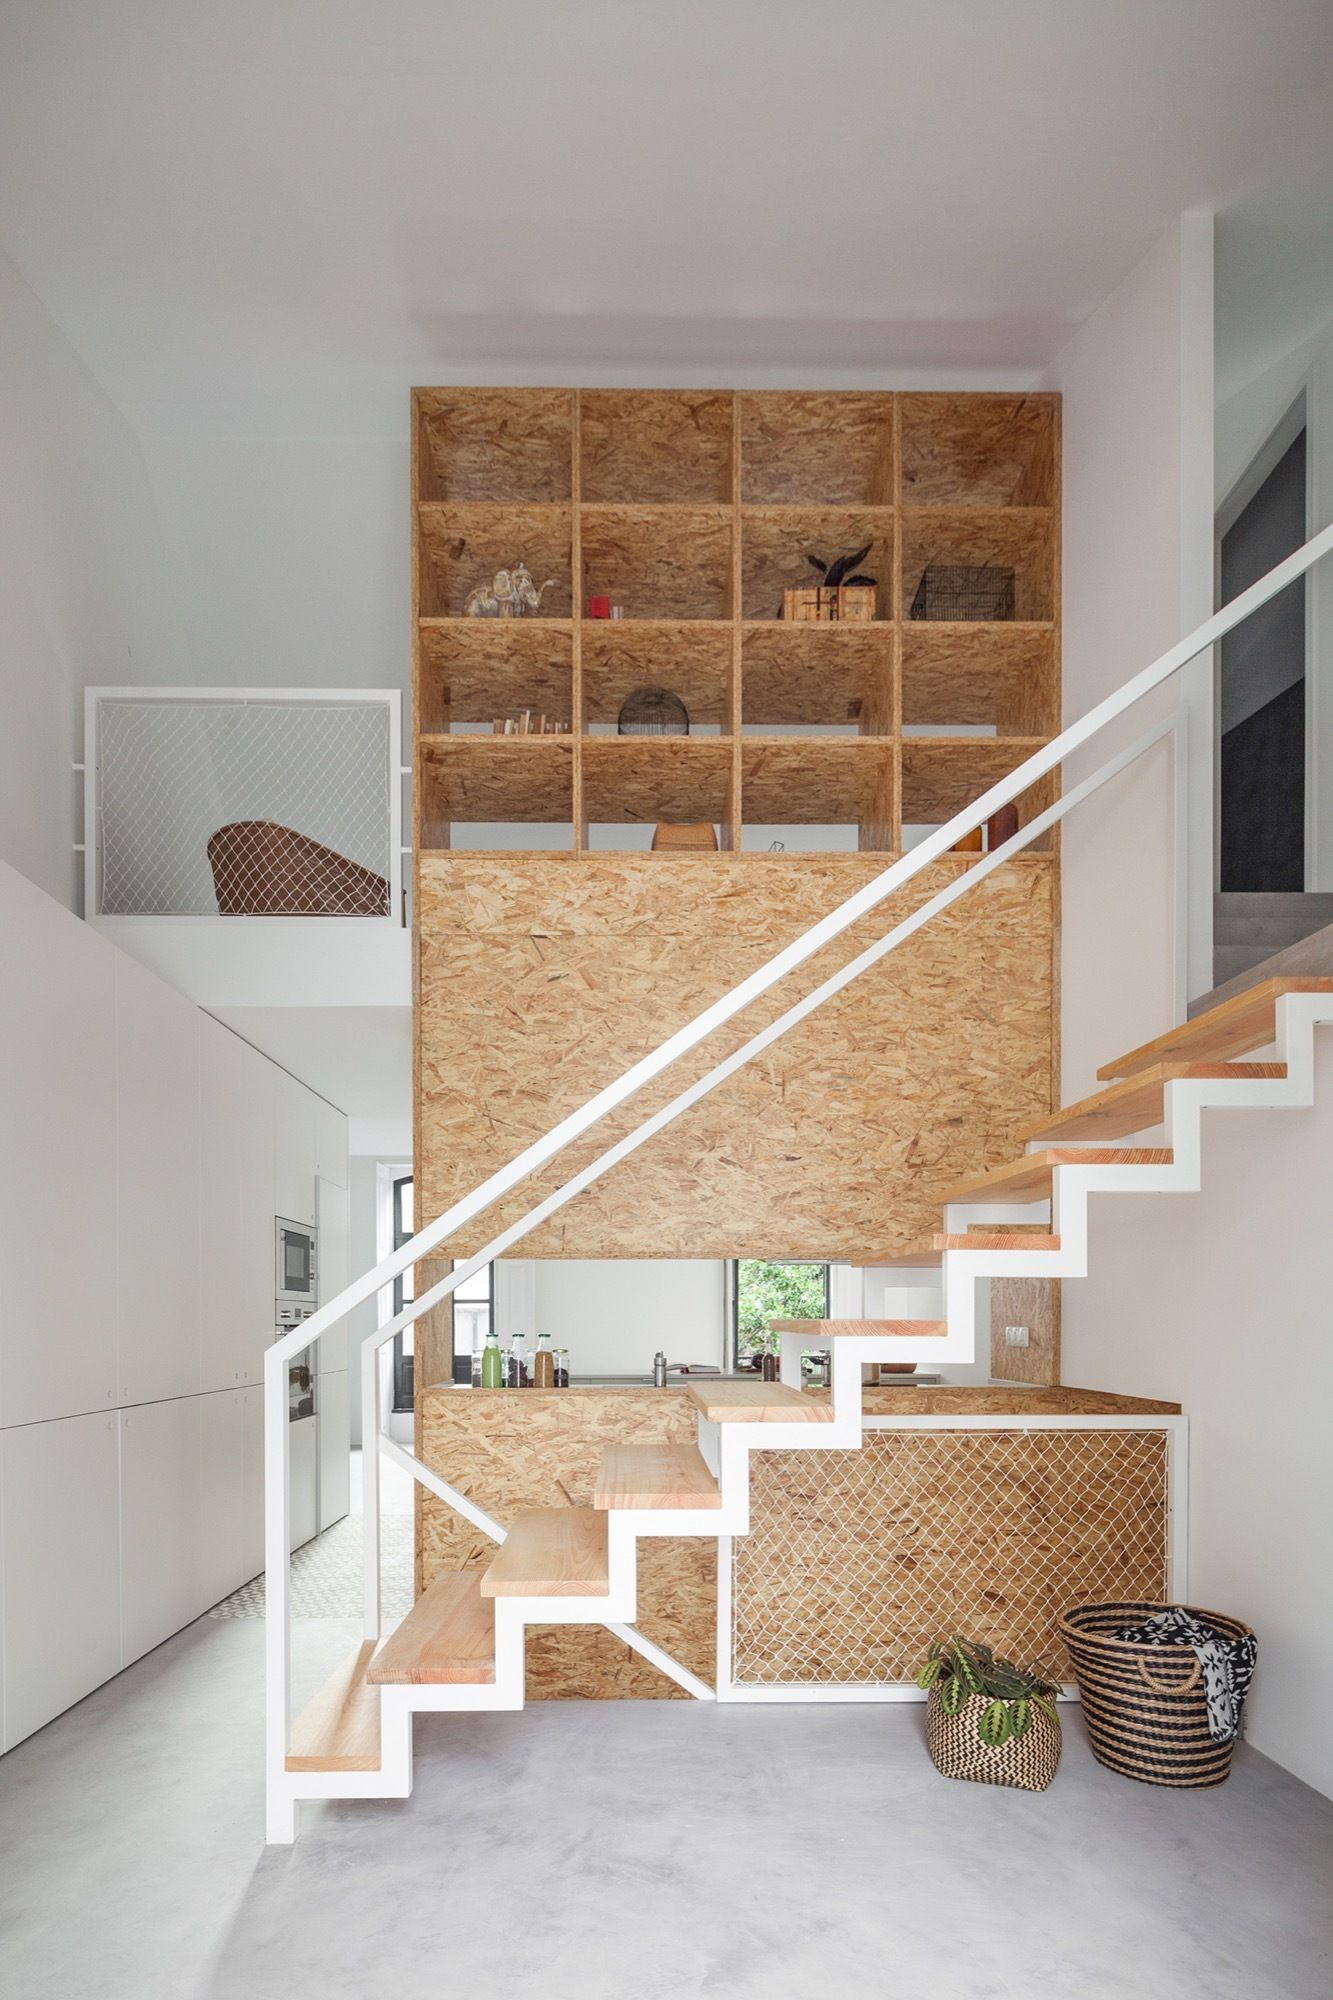 Interiordesignmagazine The Art Of Storage Domingos Lopes Porto House By